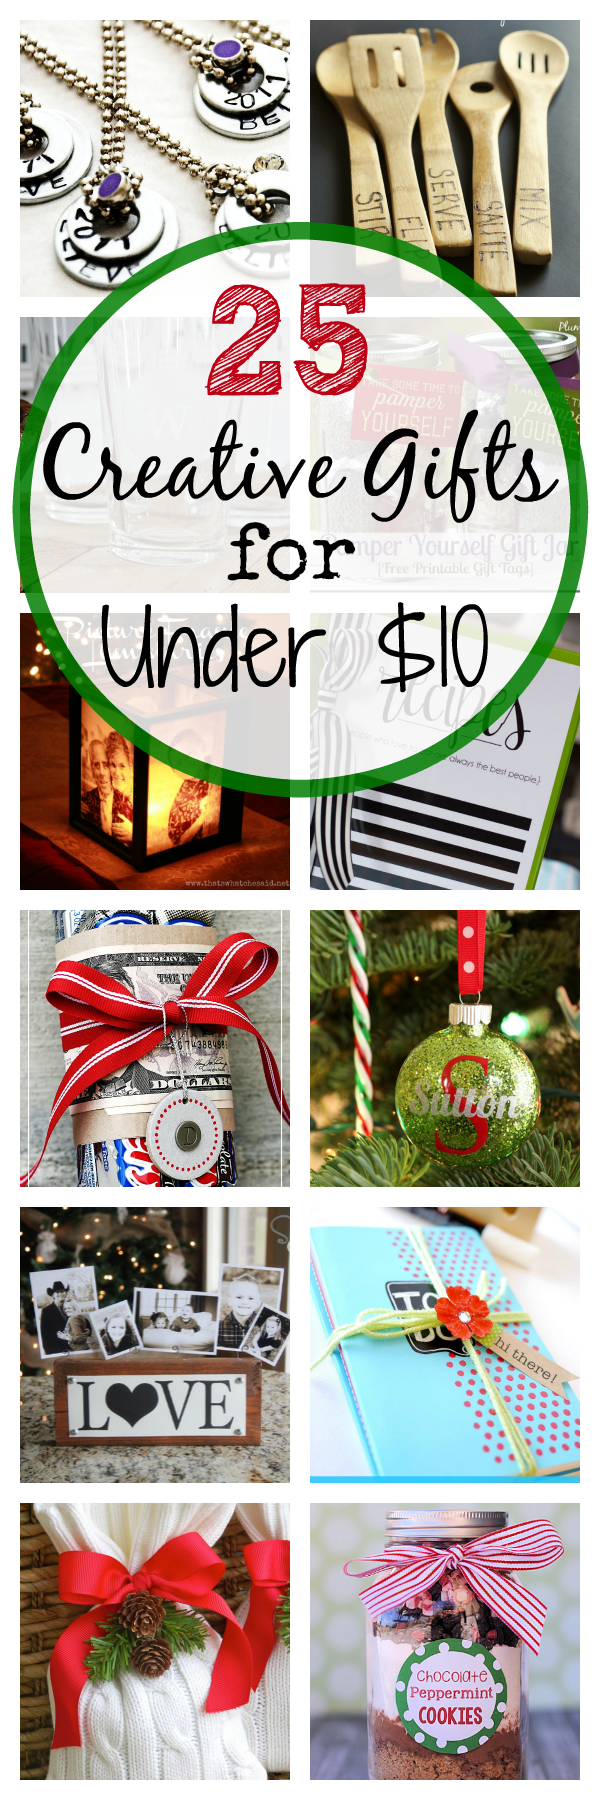 25 Fun & Simple Gifts for Neighbors this Christmas | Creative ...